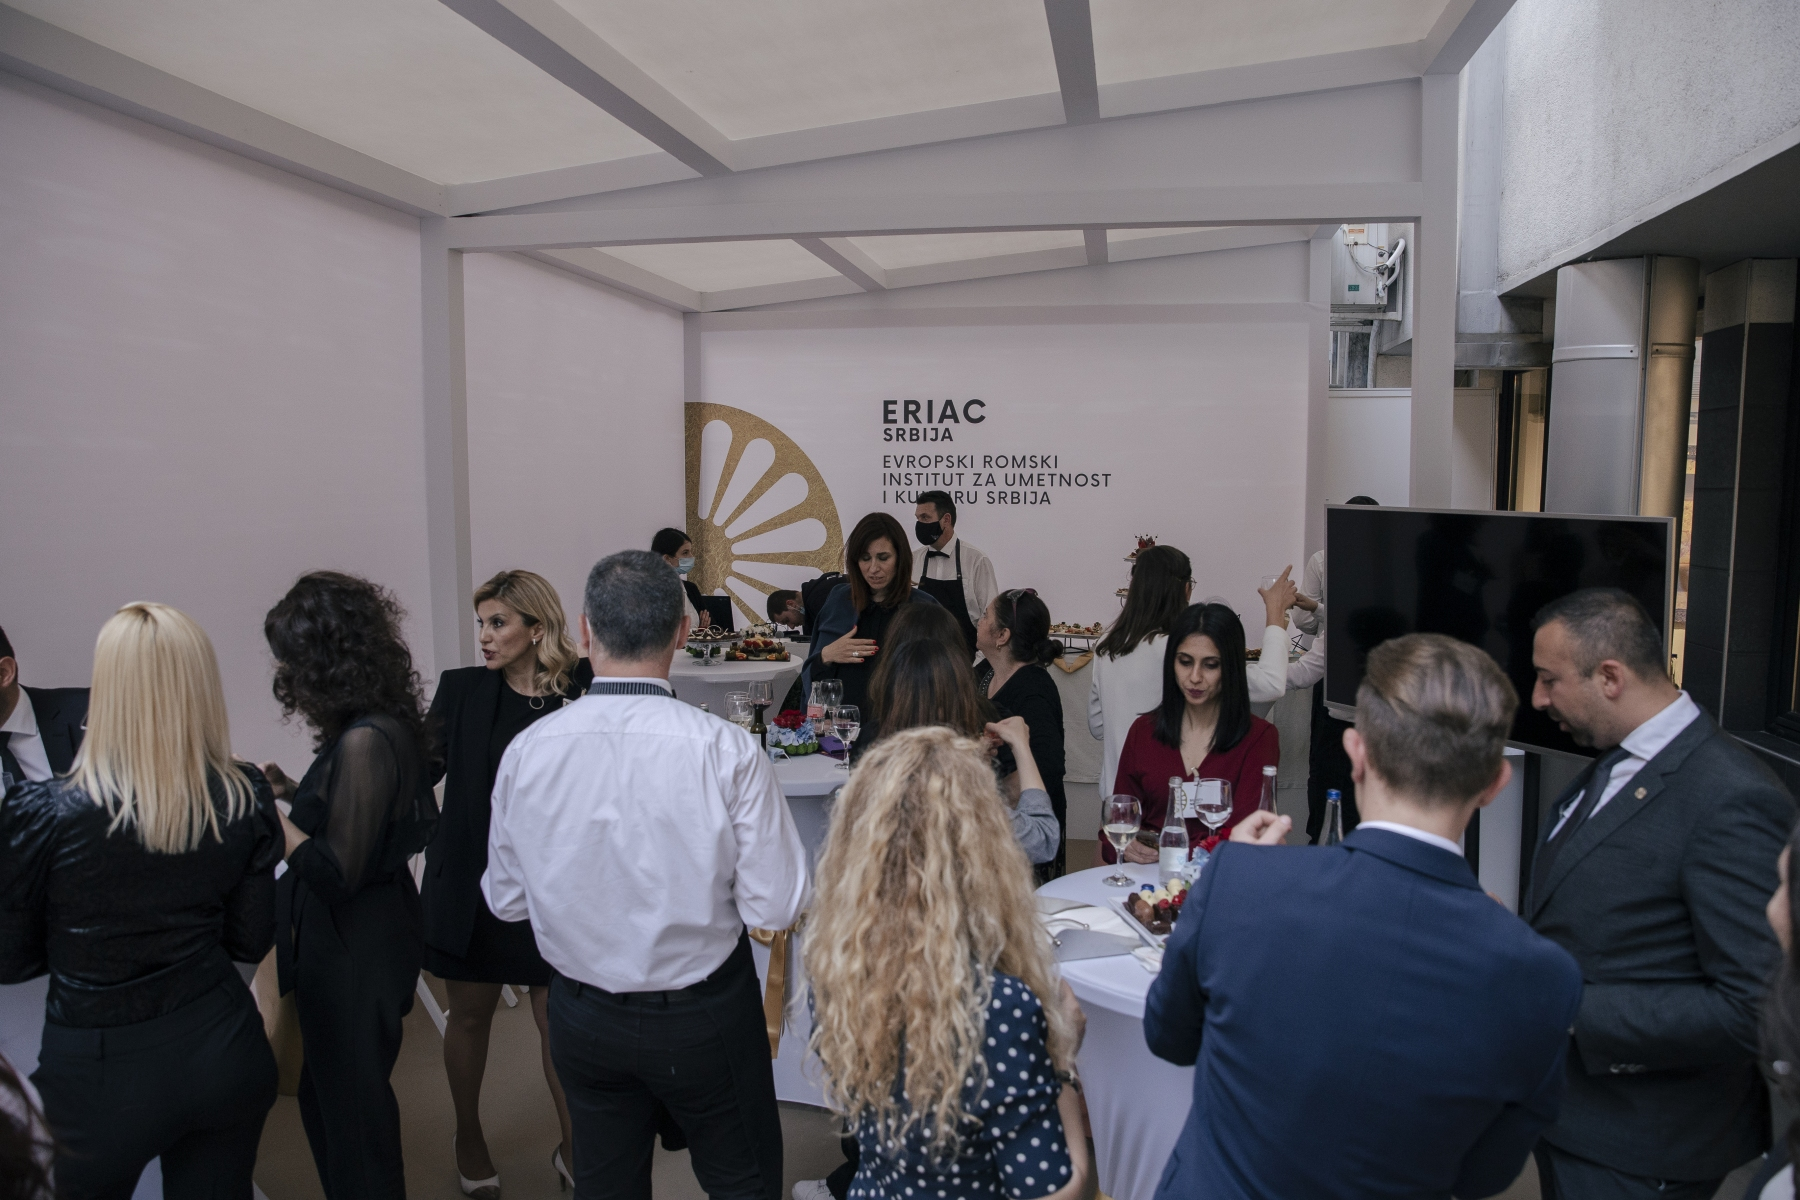 Eriac-Serbia-and-the-Roma-Education-Fund-Opening_May_2021_VZ043